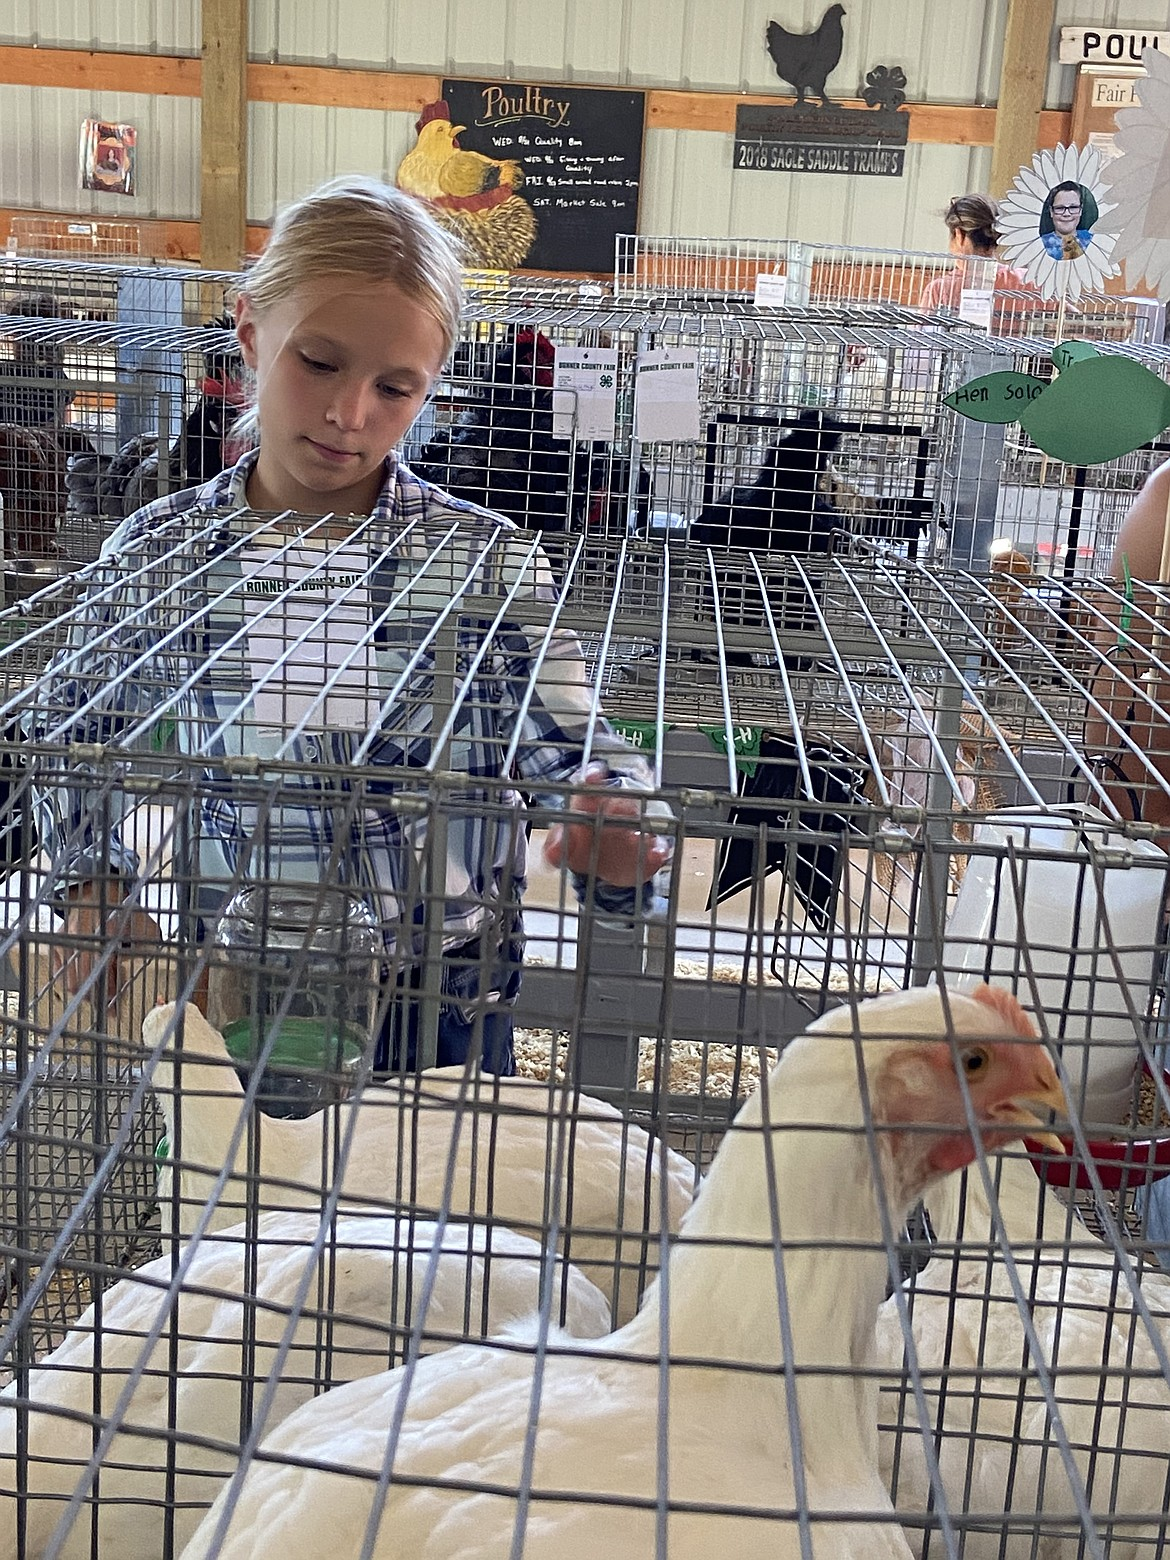 Molly Sloan, who is a member of the Gold 'n' Grouse 4-H Club, takes care of her chickens at the Bonner County Fair last week.